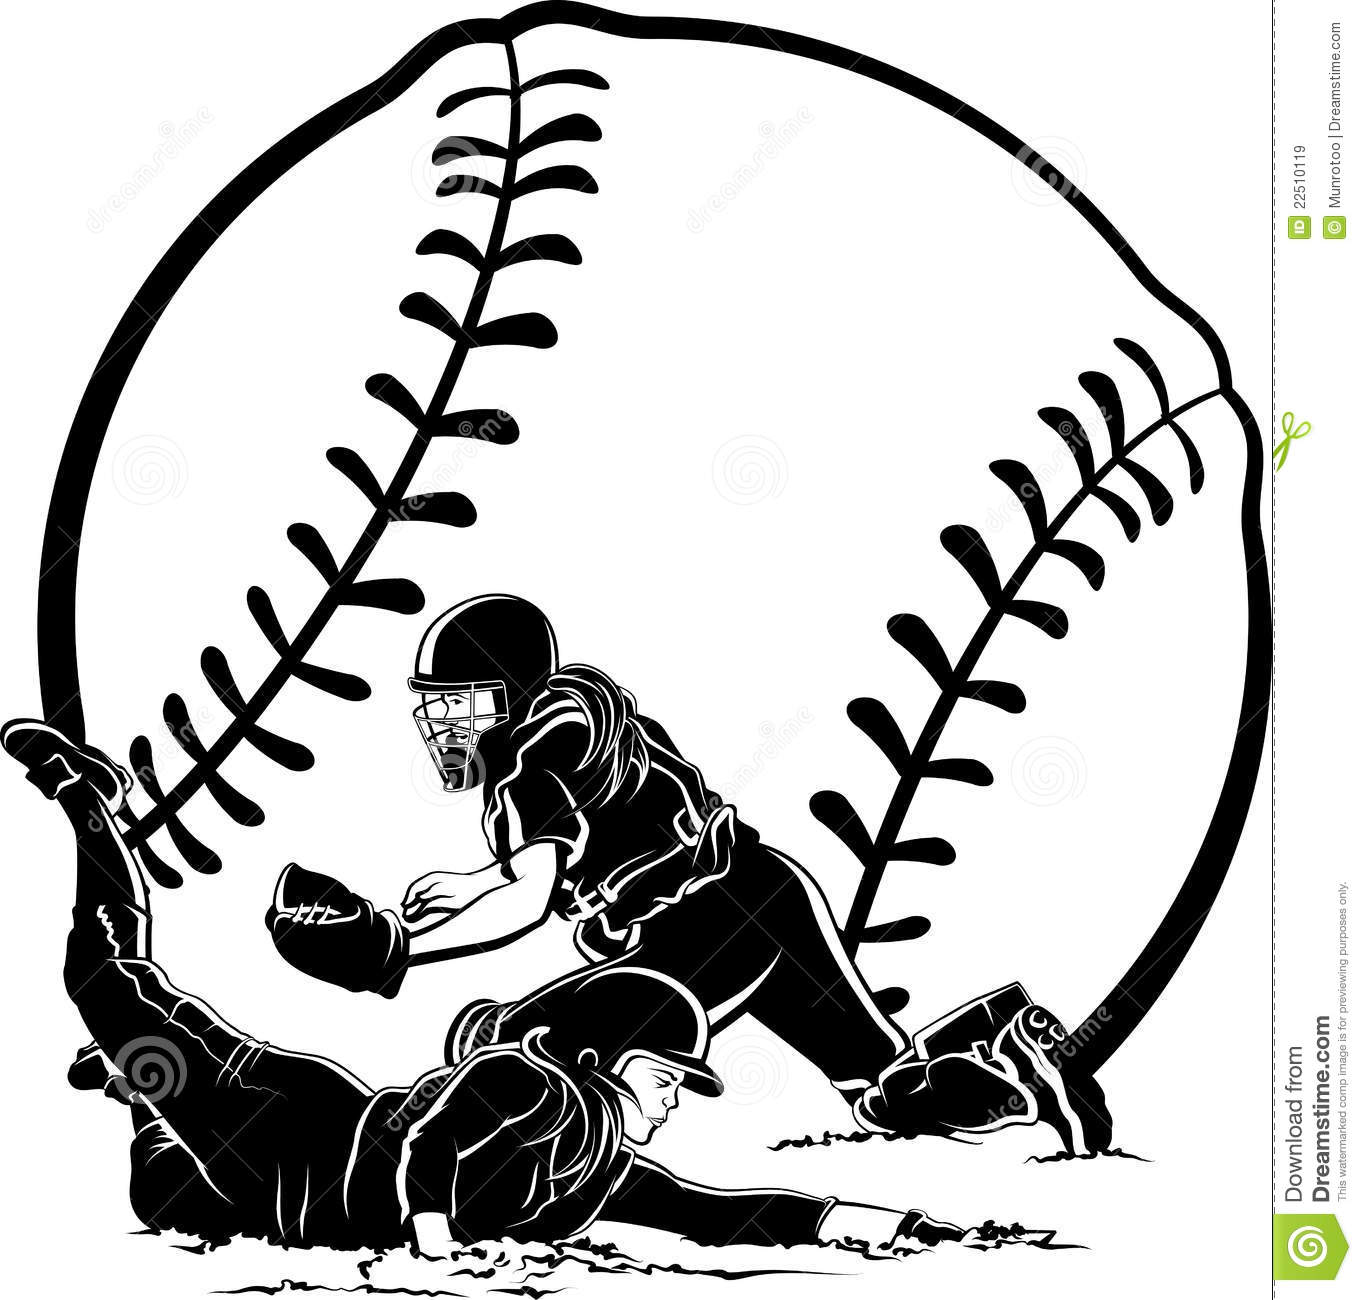 Softball Slide stock image. Image of sliding, cleats